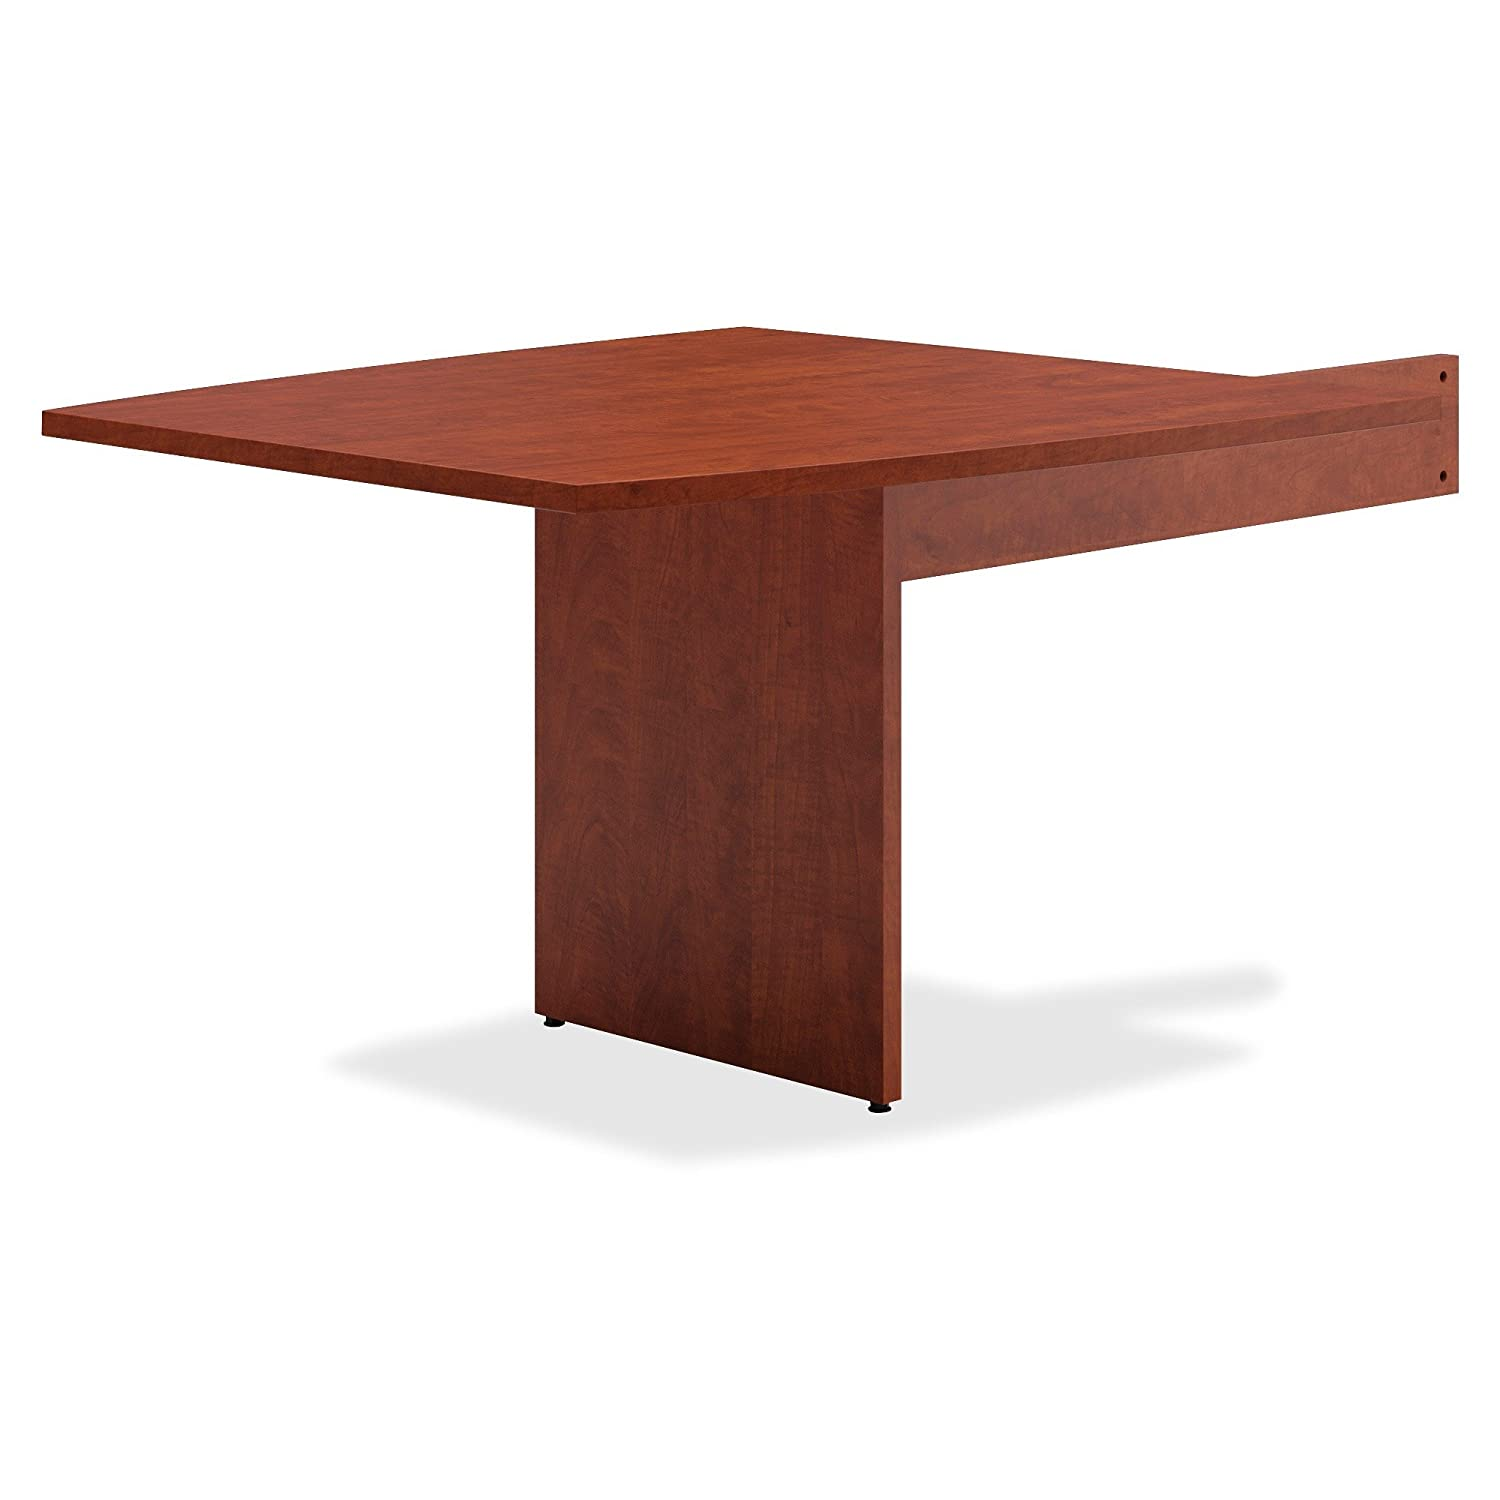 Exceptionnel Amazon.com : Basyx BLMTO48BA1A1 BL Laminate Series Boat Shaped Modular  Conference Table End, Boat, Medium Cherry : Office Products